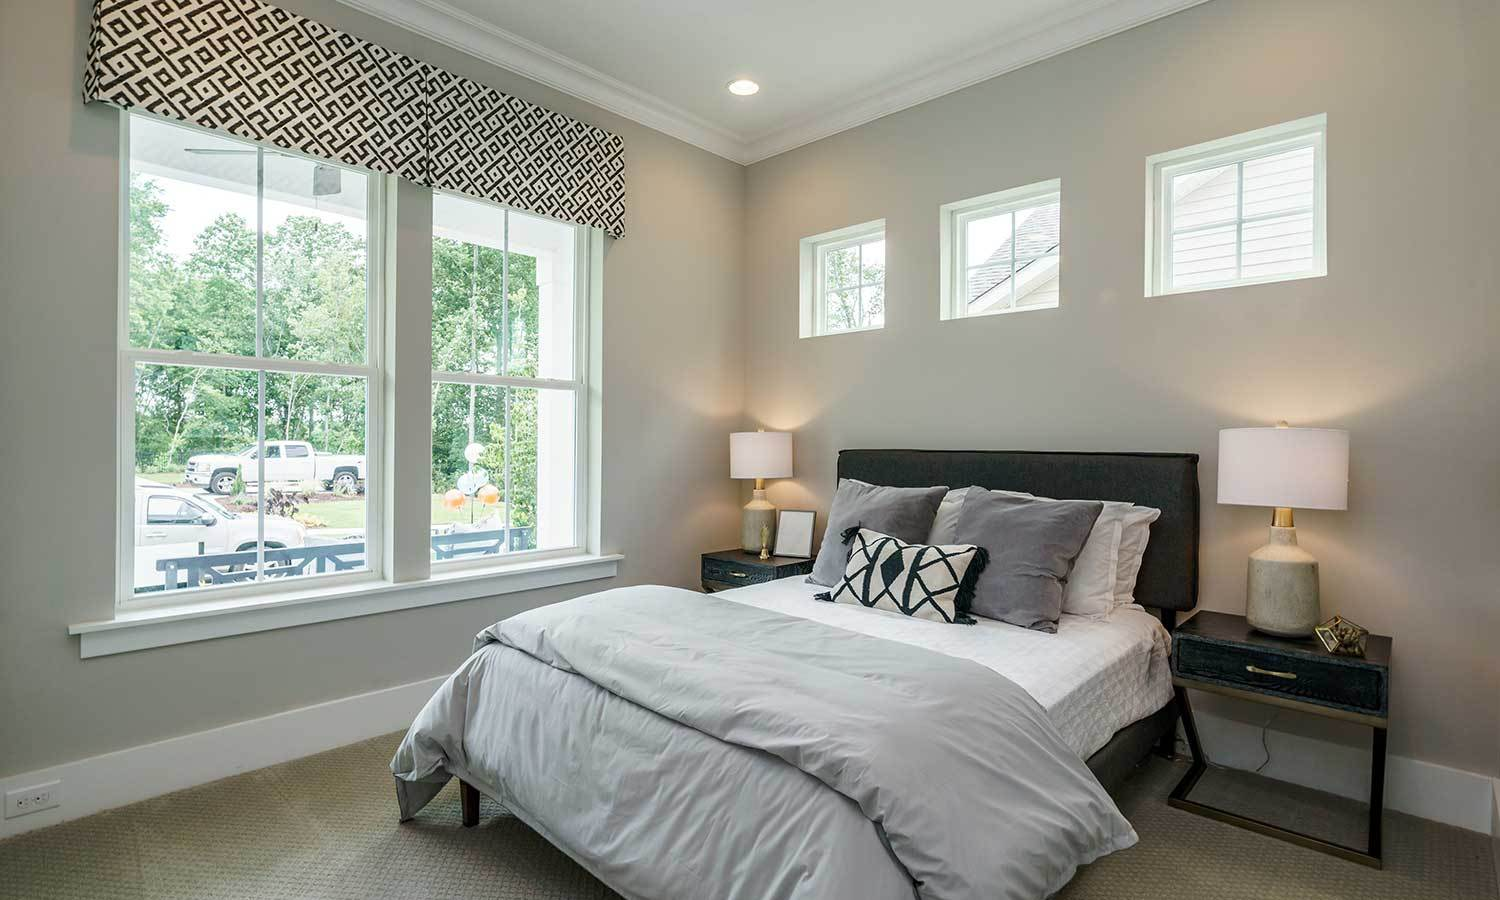 Bedroom featured in The Virtuoso By Elevate Homes in York, PA